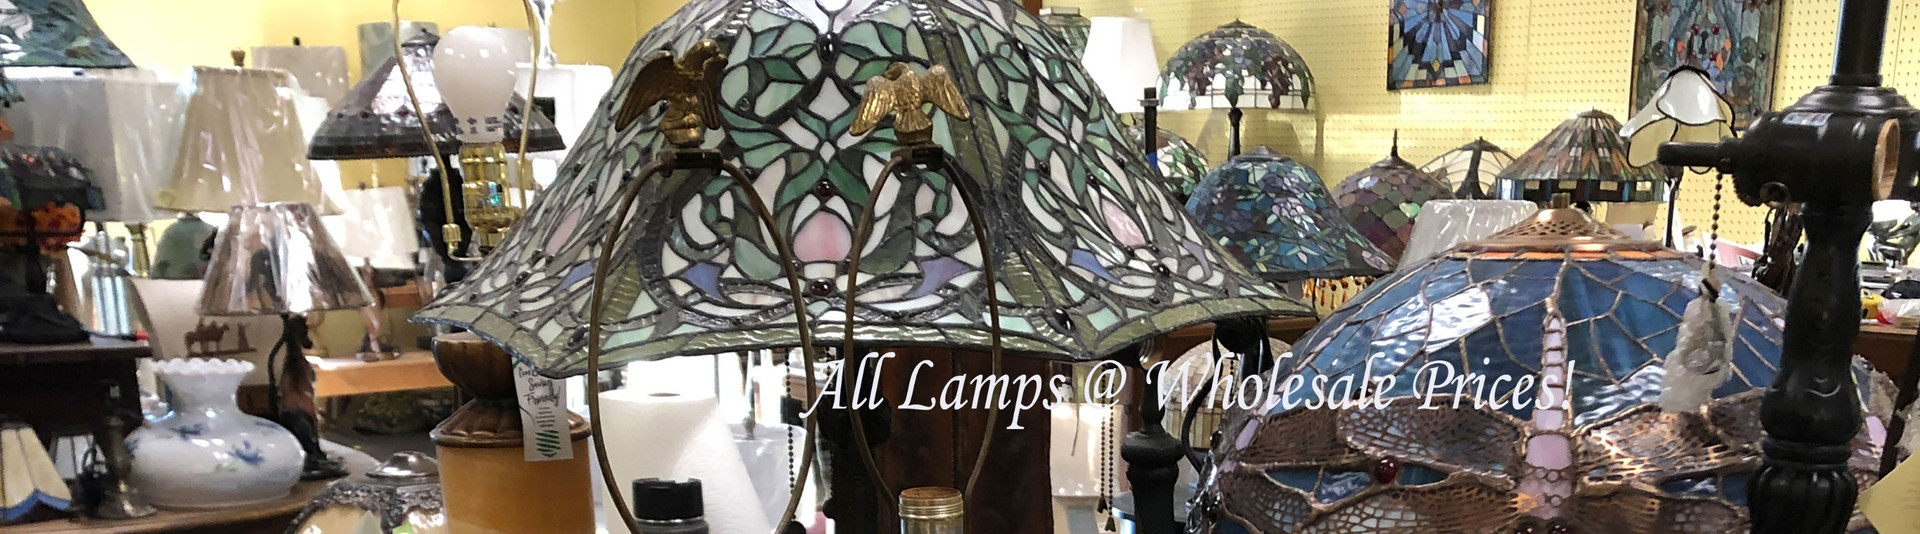 banner-All-Lamps-wholesale-prices_edited